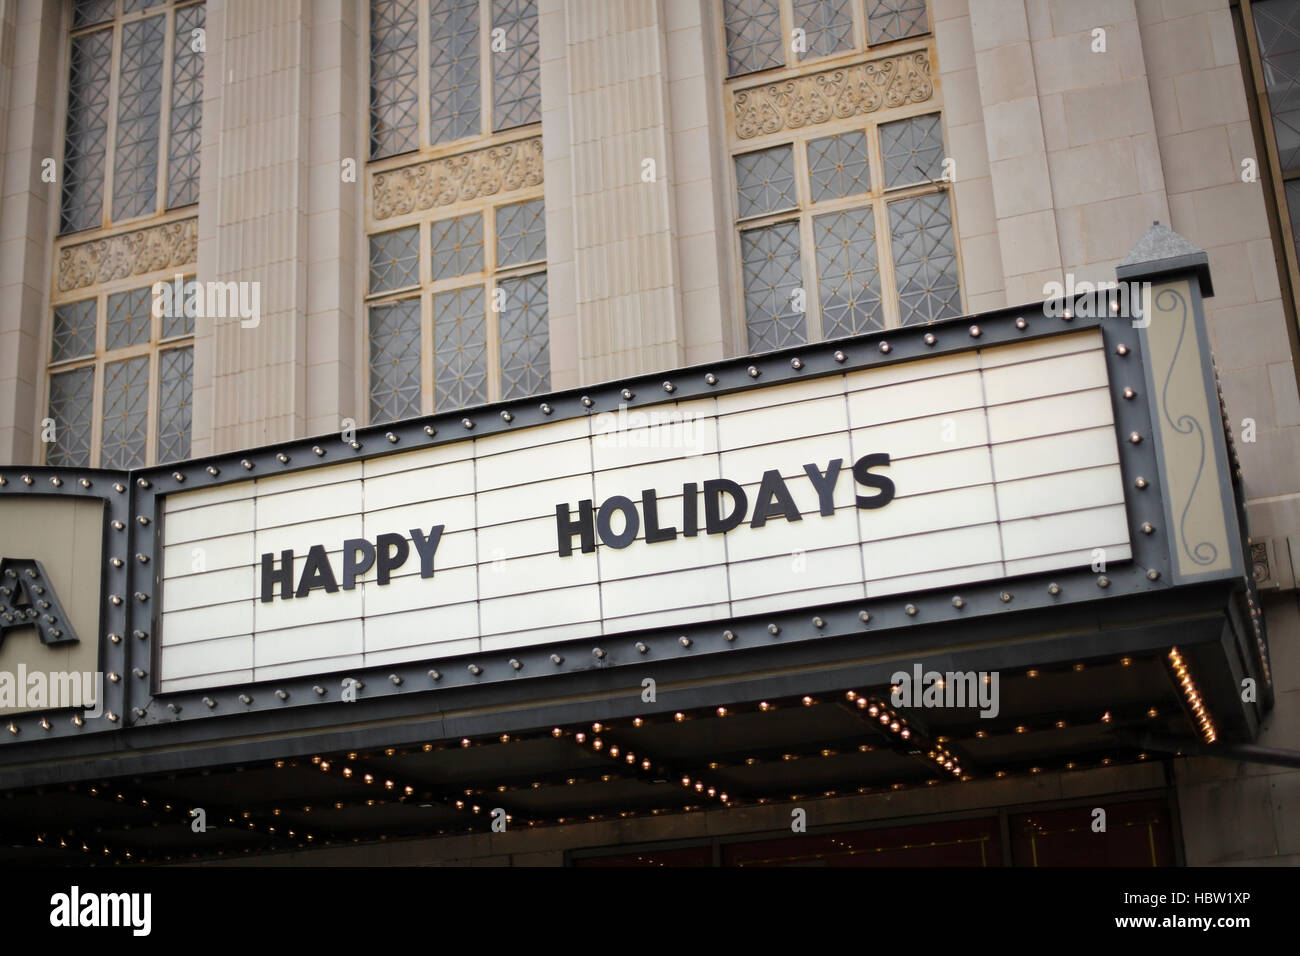 A politically correct Christmas greeting on a theater marquee, North Carolina, USA - Stock Image